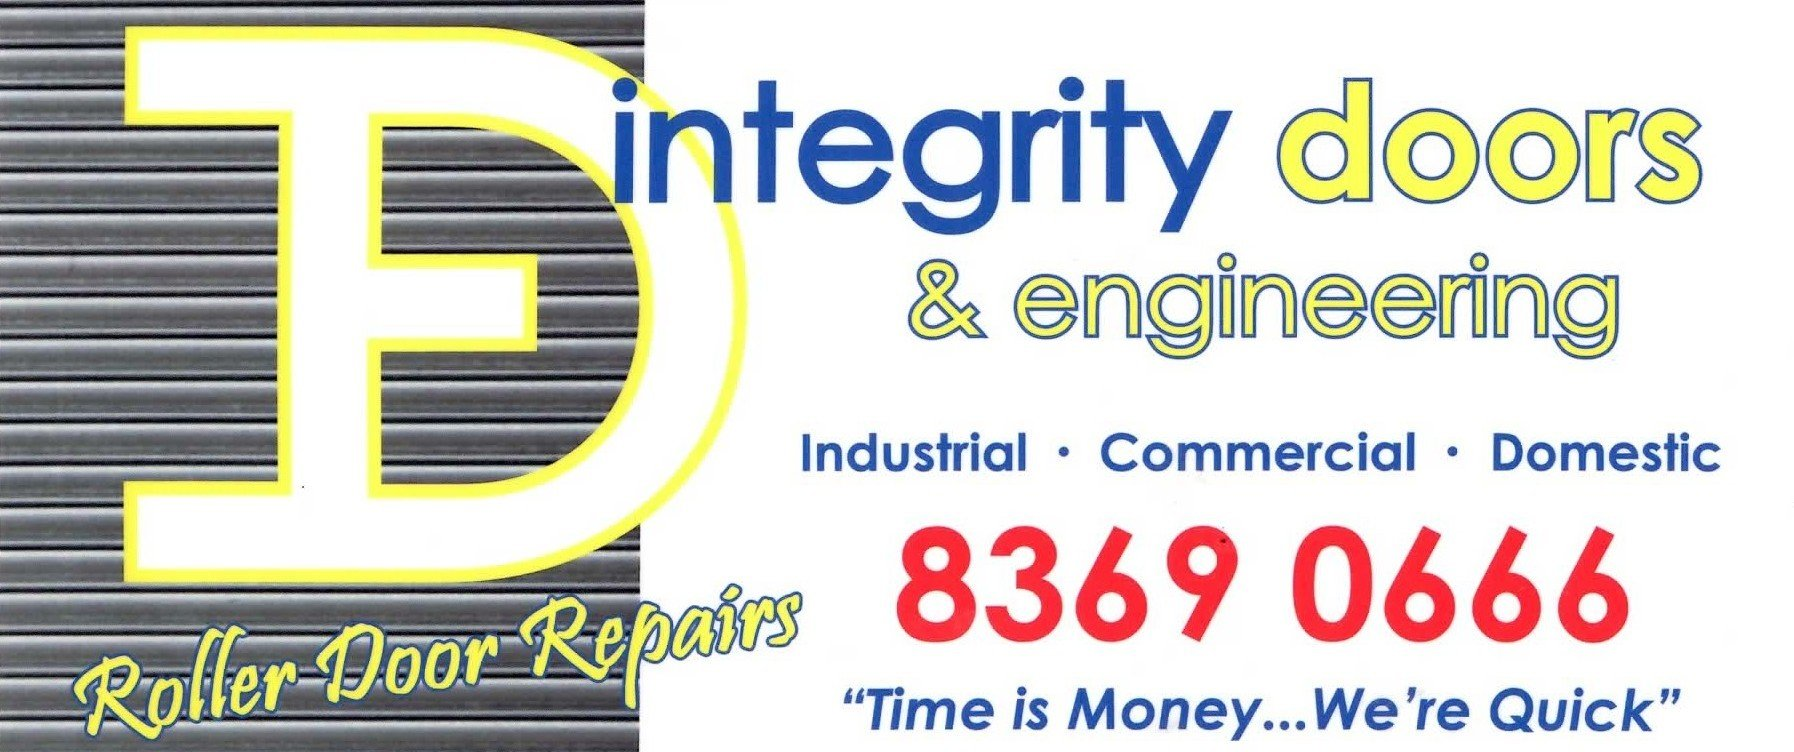 industrial-commercial-roller-doors-gates-adelaide-emergency-repairs-integritydoors.com.au